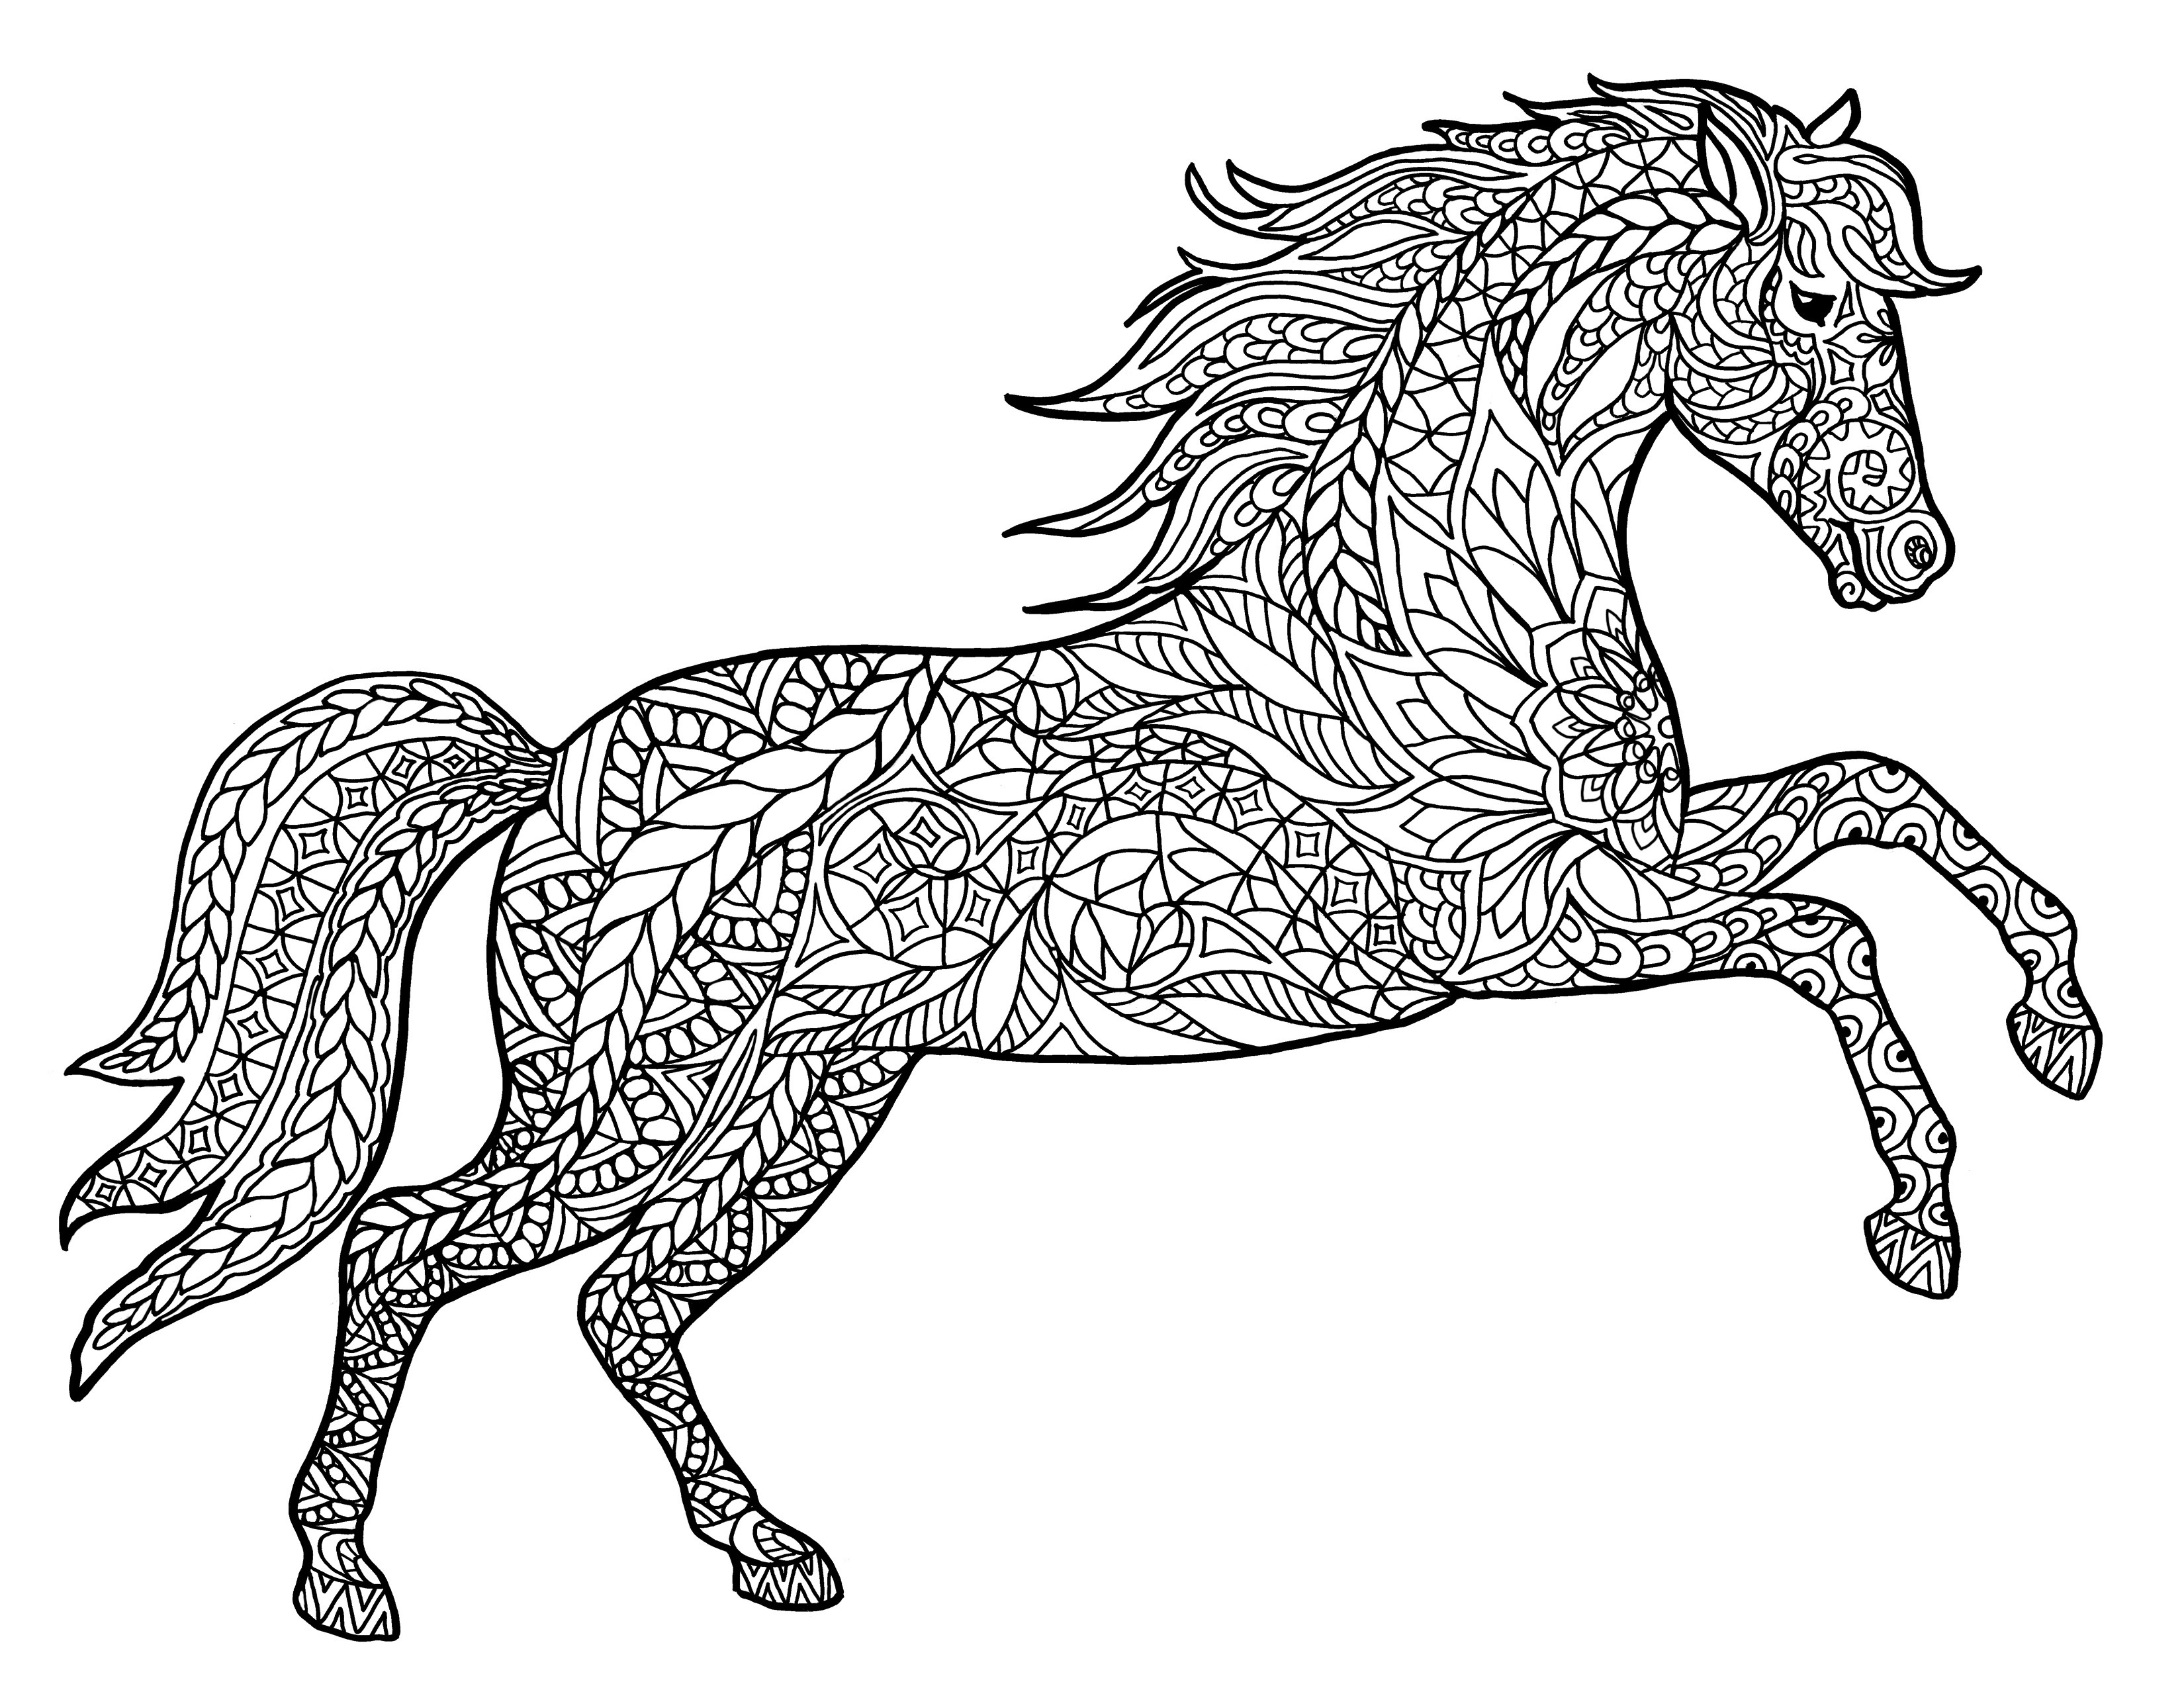 Printable Horse Coloring Pages For Adults  Adult Coloring Pages Animals Best Coloring Pages For Kids